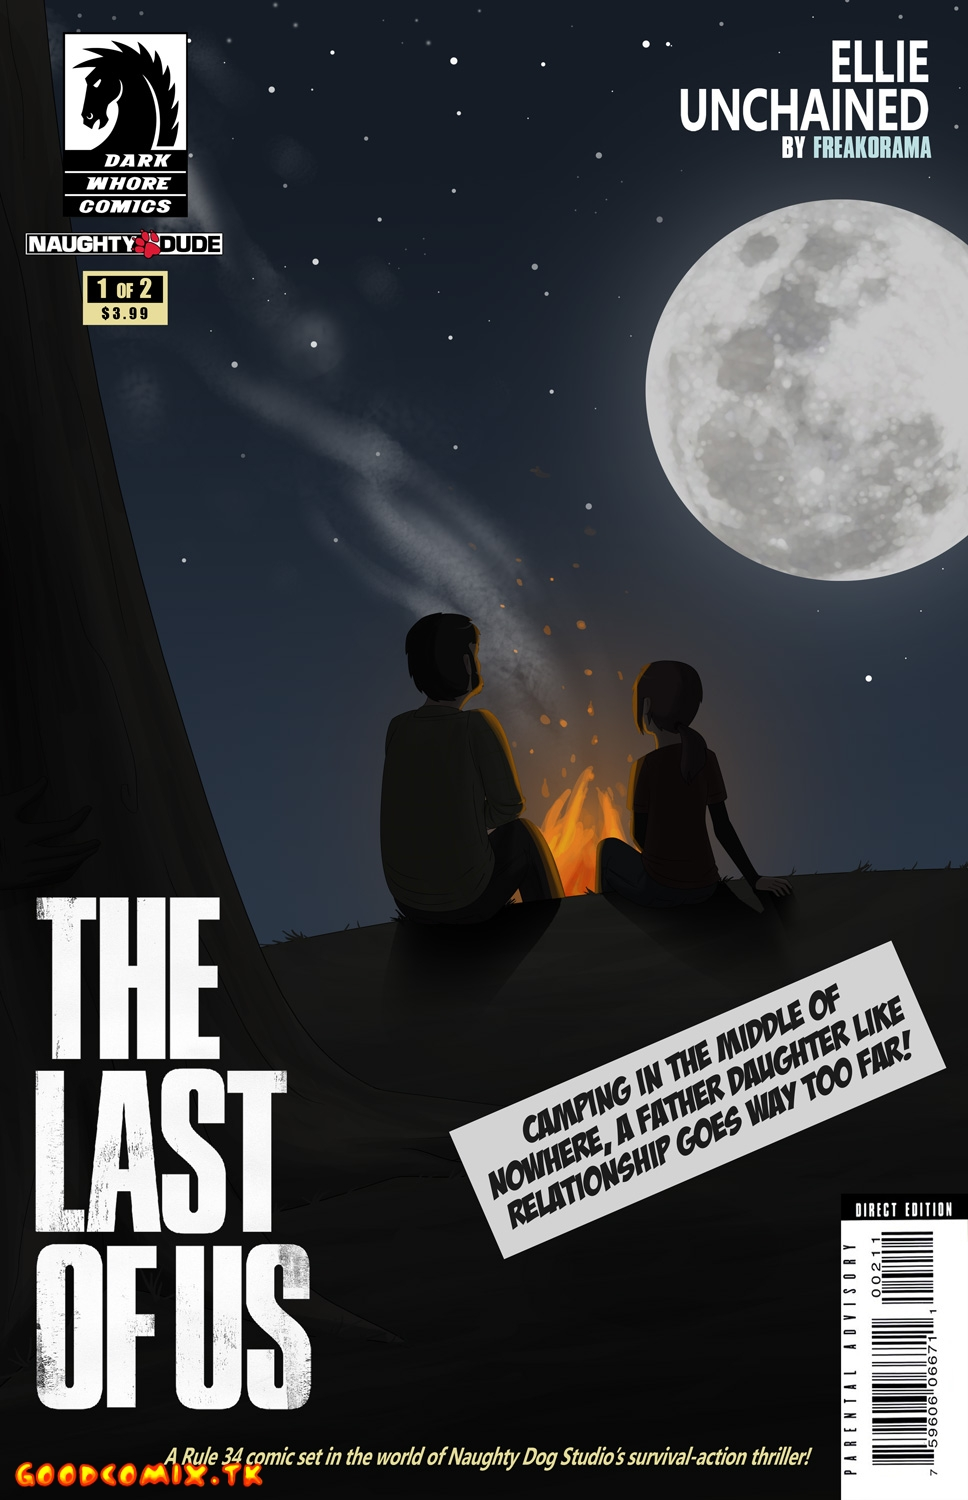 Goodcomix.tk The Last of Us - [Freako] - Ellie Unchained #1 [Completed]